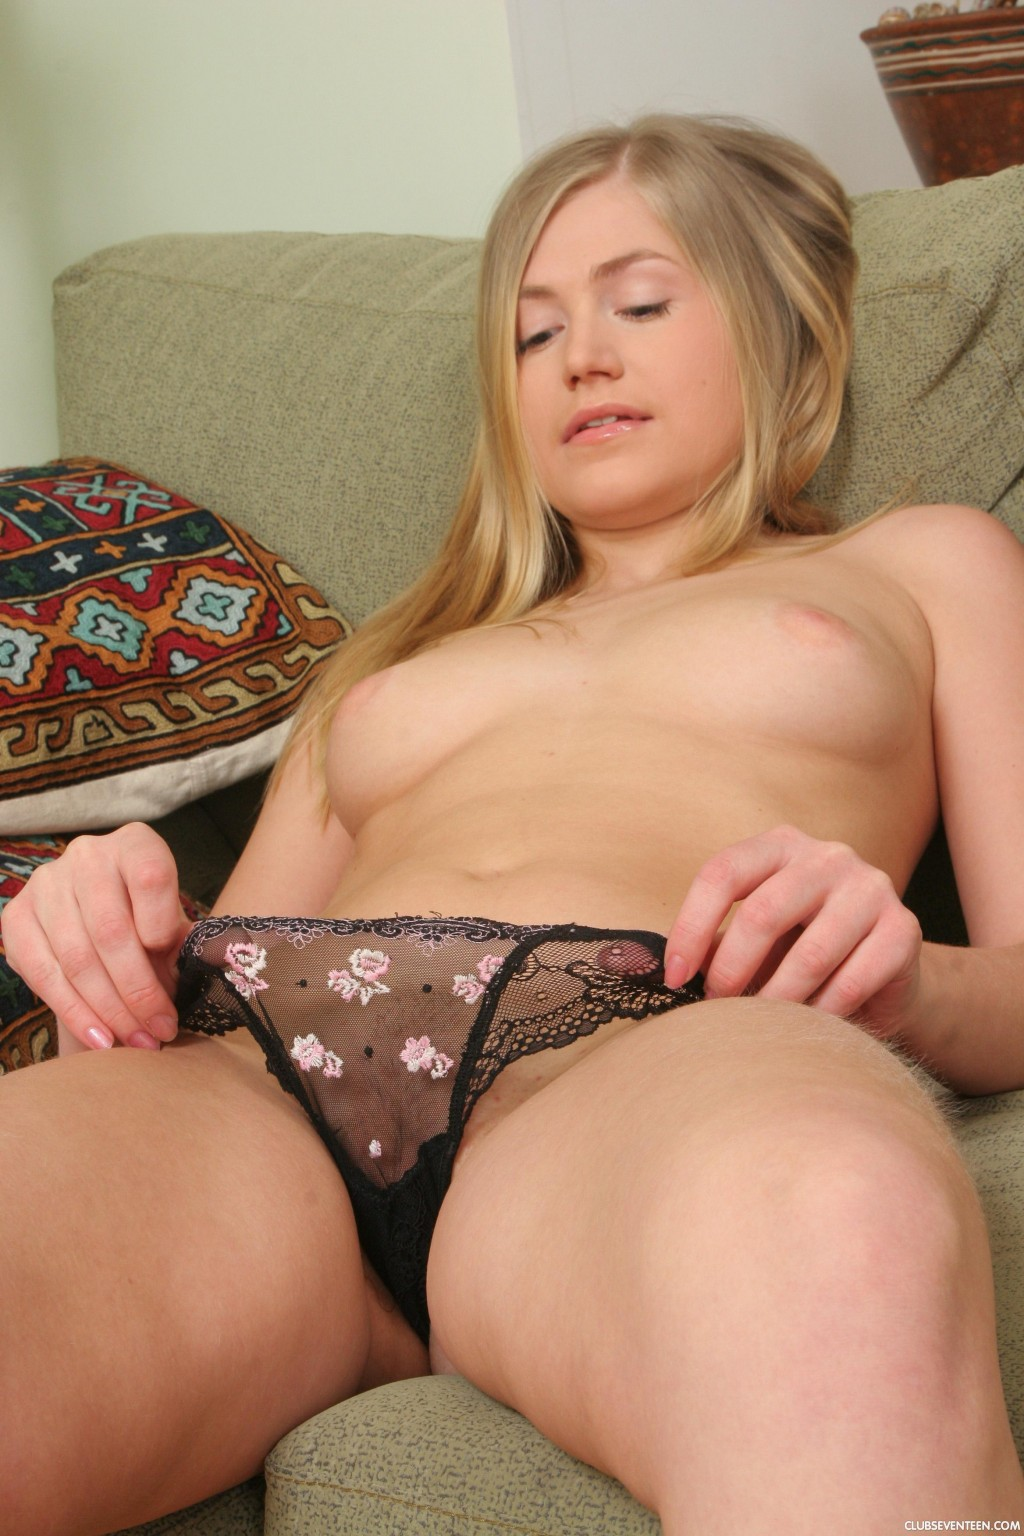 hot blonde virgin naked pics